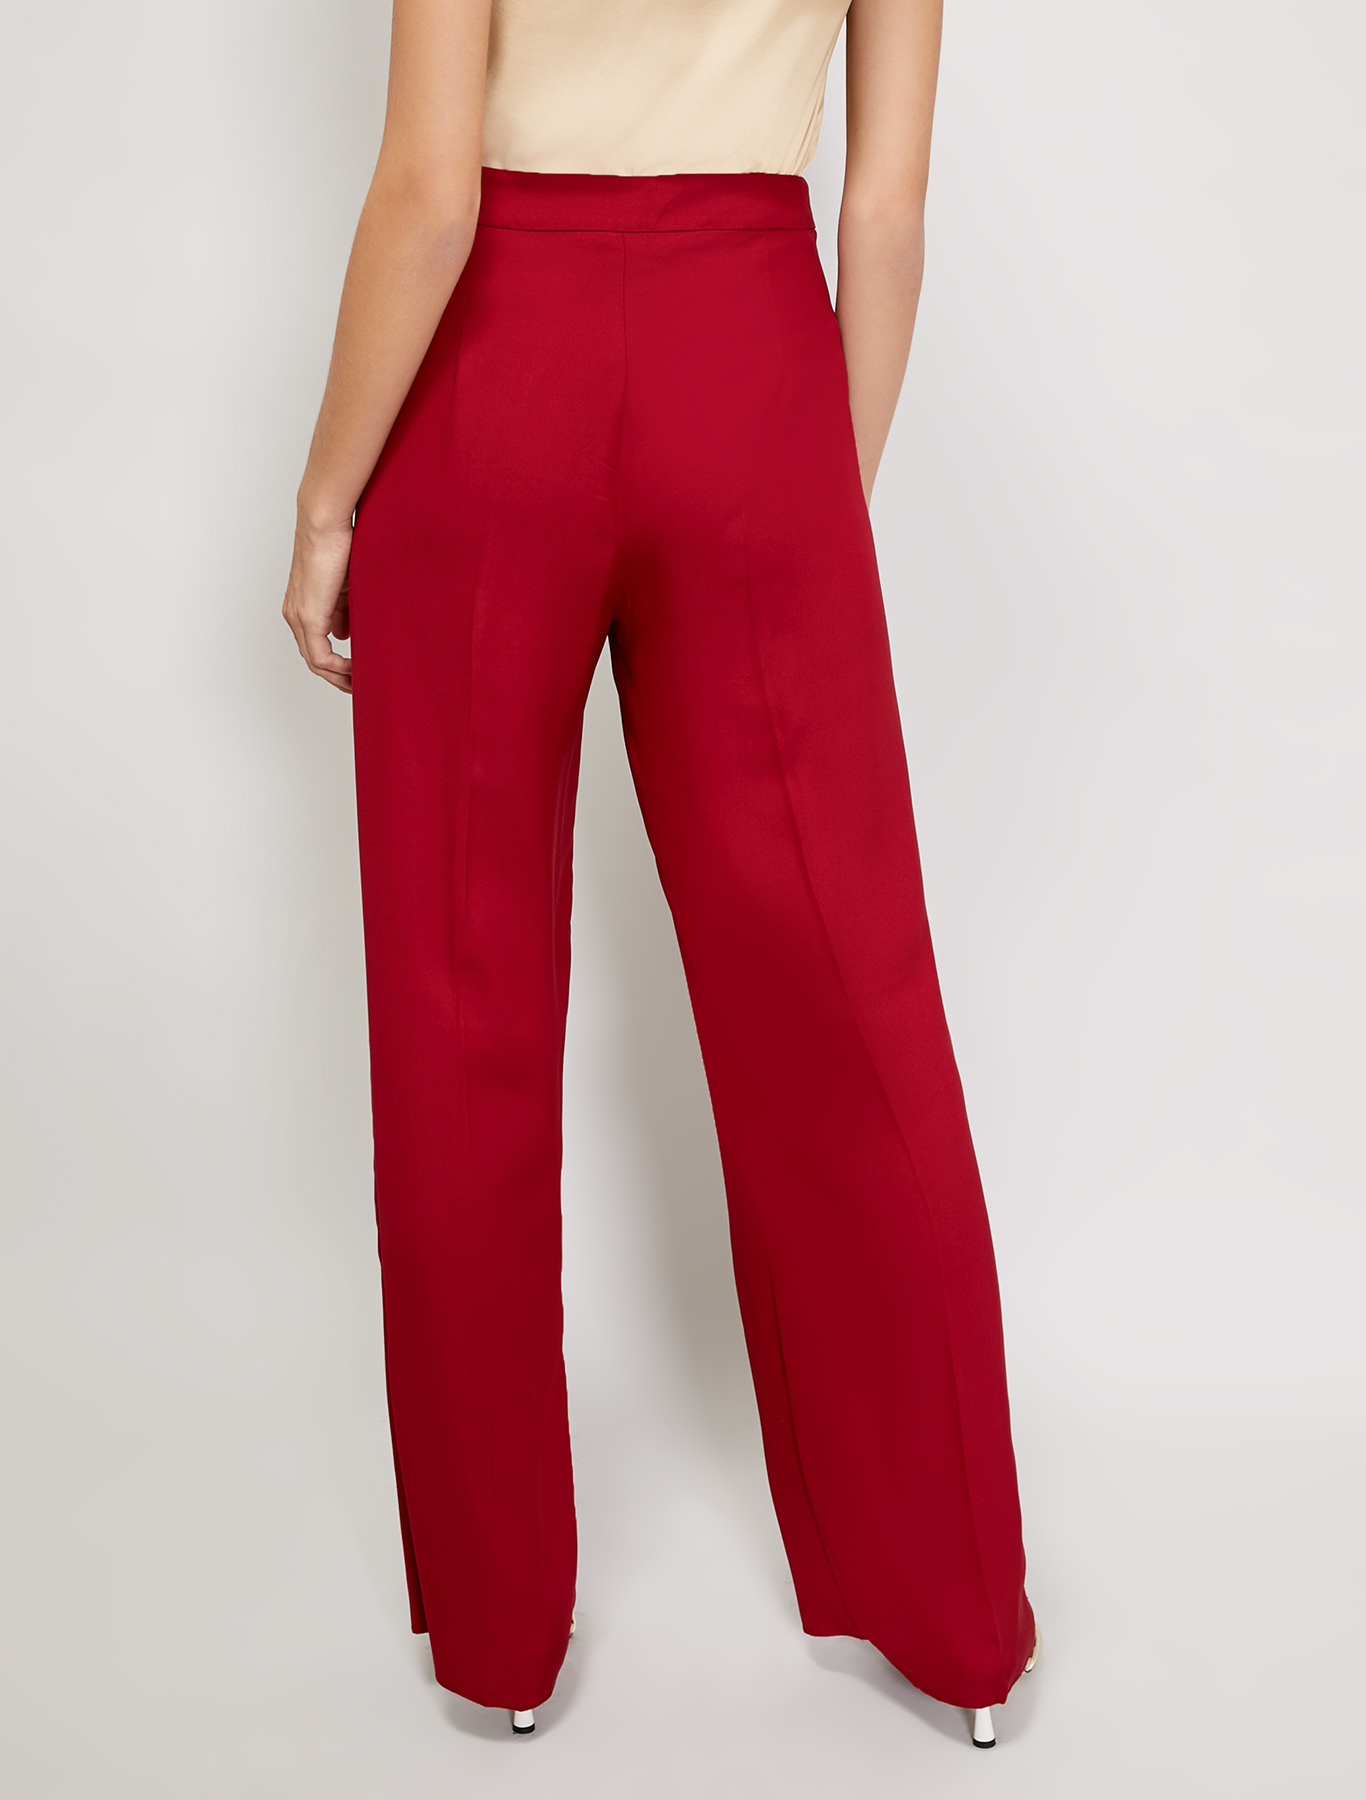 Flowing cady trousers - burgundy - pennyblack